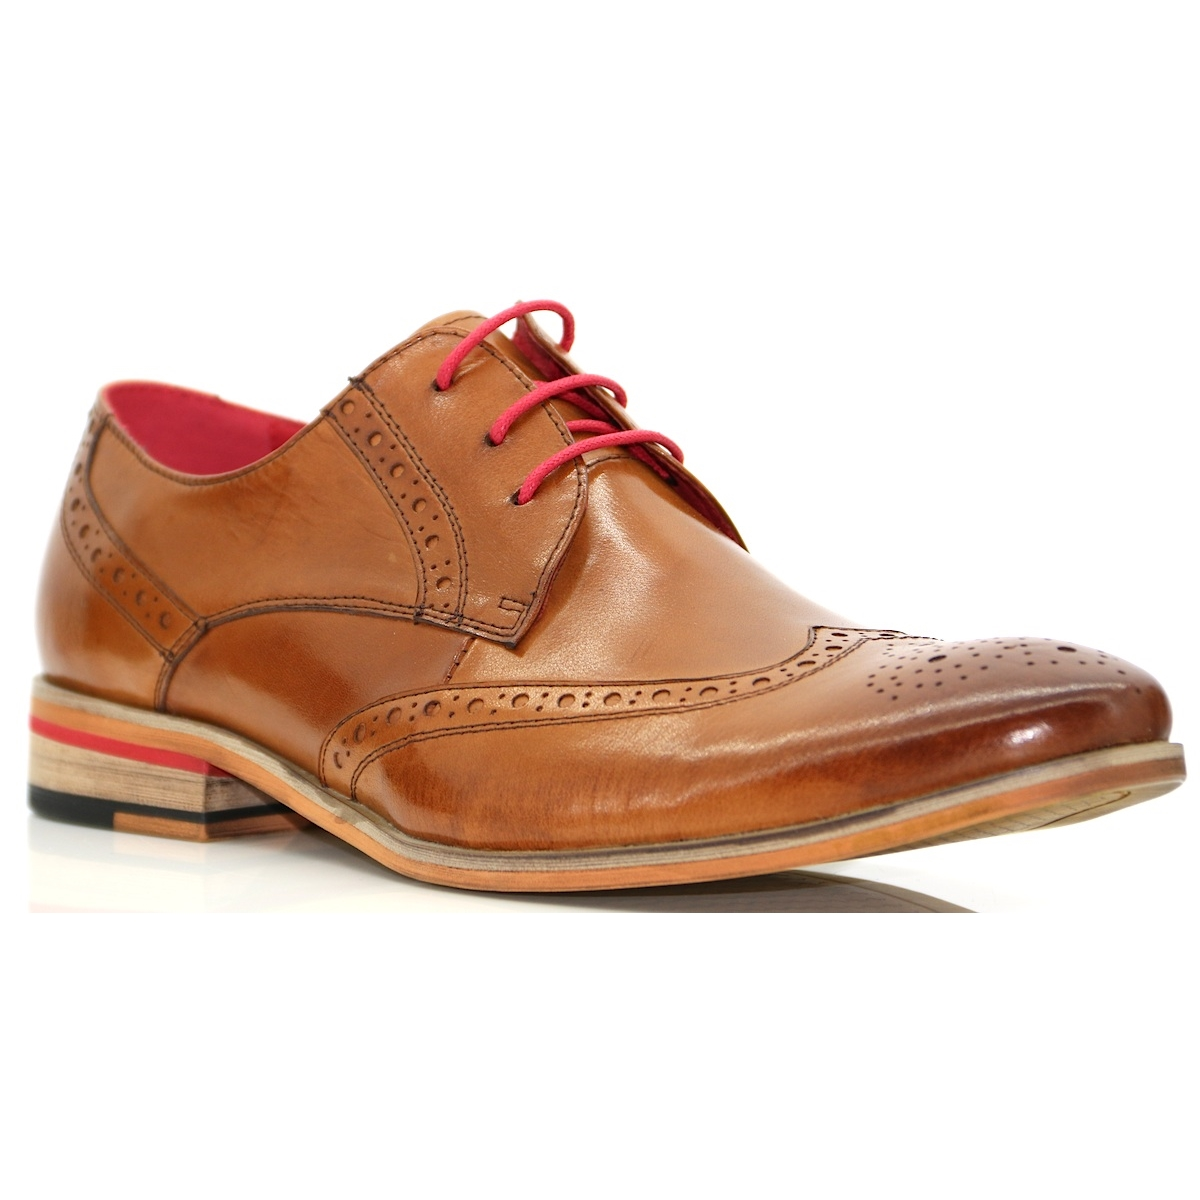 orlando paolo vandini brogue www panache shoes